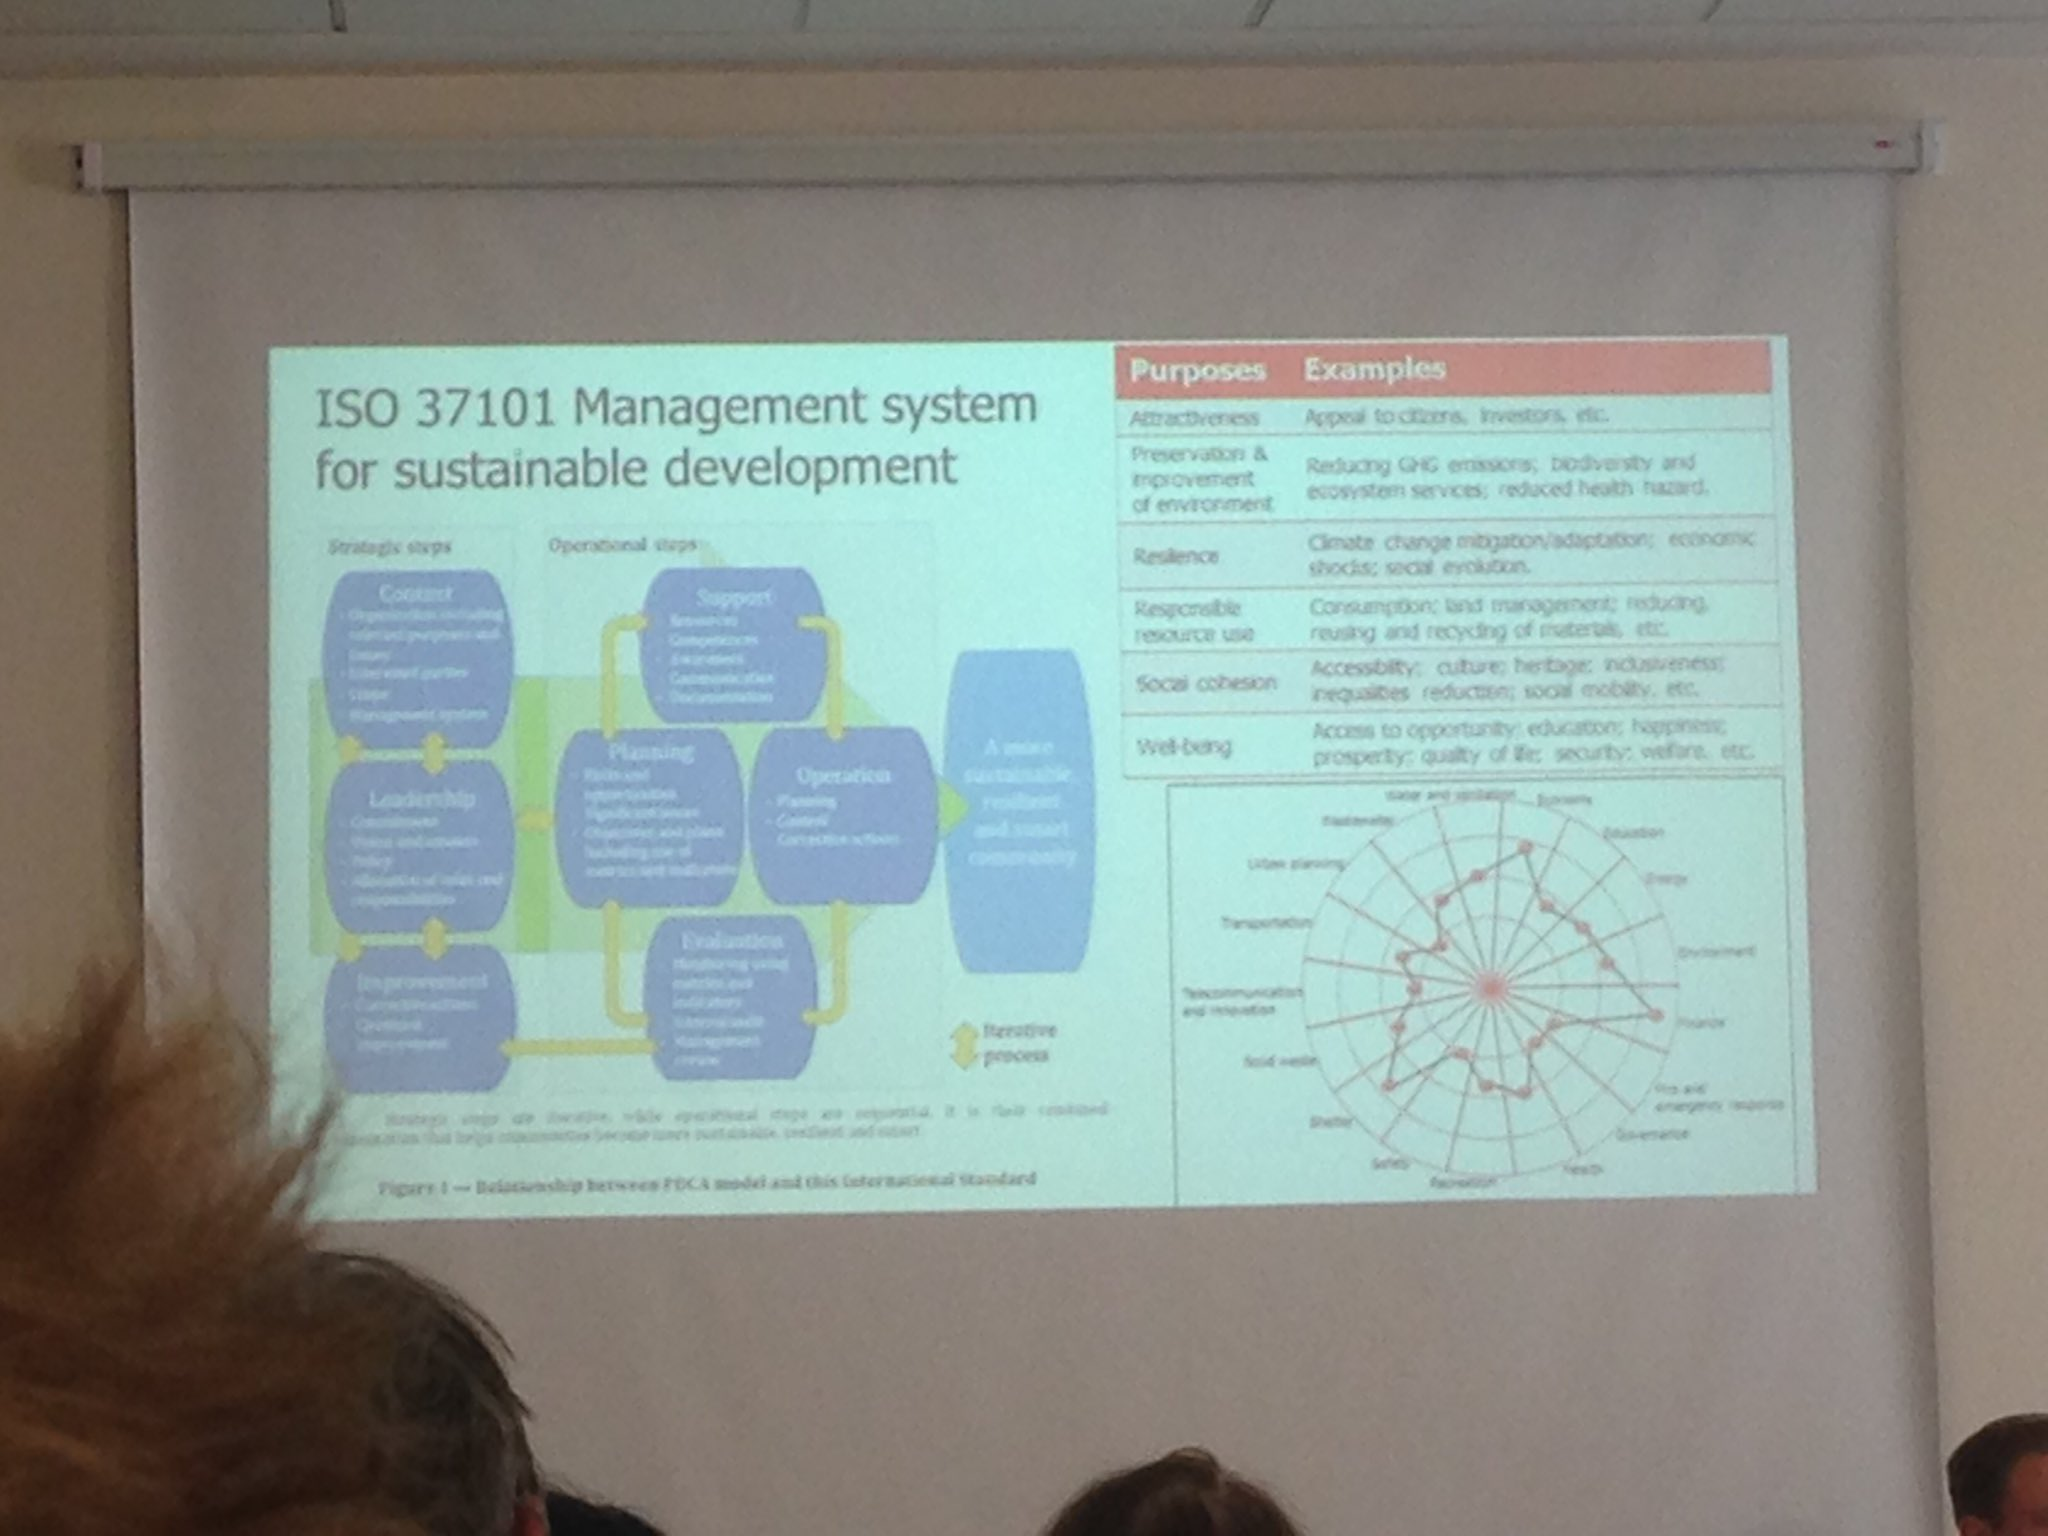 It is what you do with the standards that is important #DSFC17 @UrbanBigData #sustainabledevelopment https://t.co/5CBR385g5B